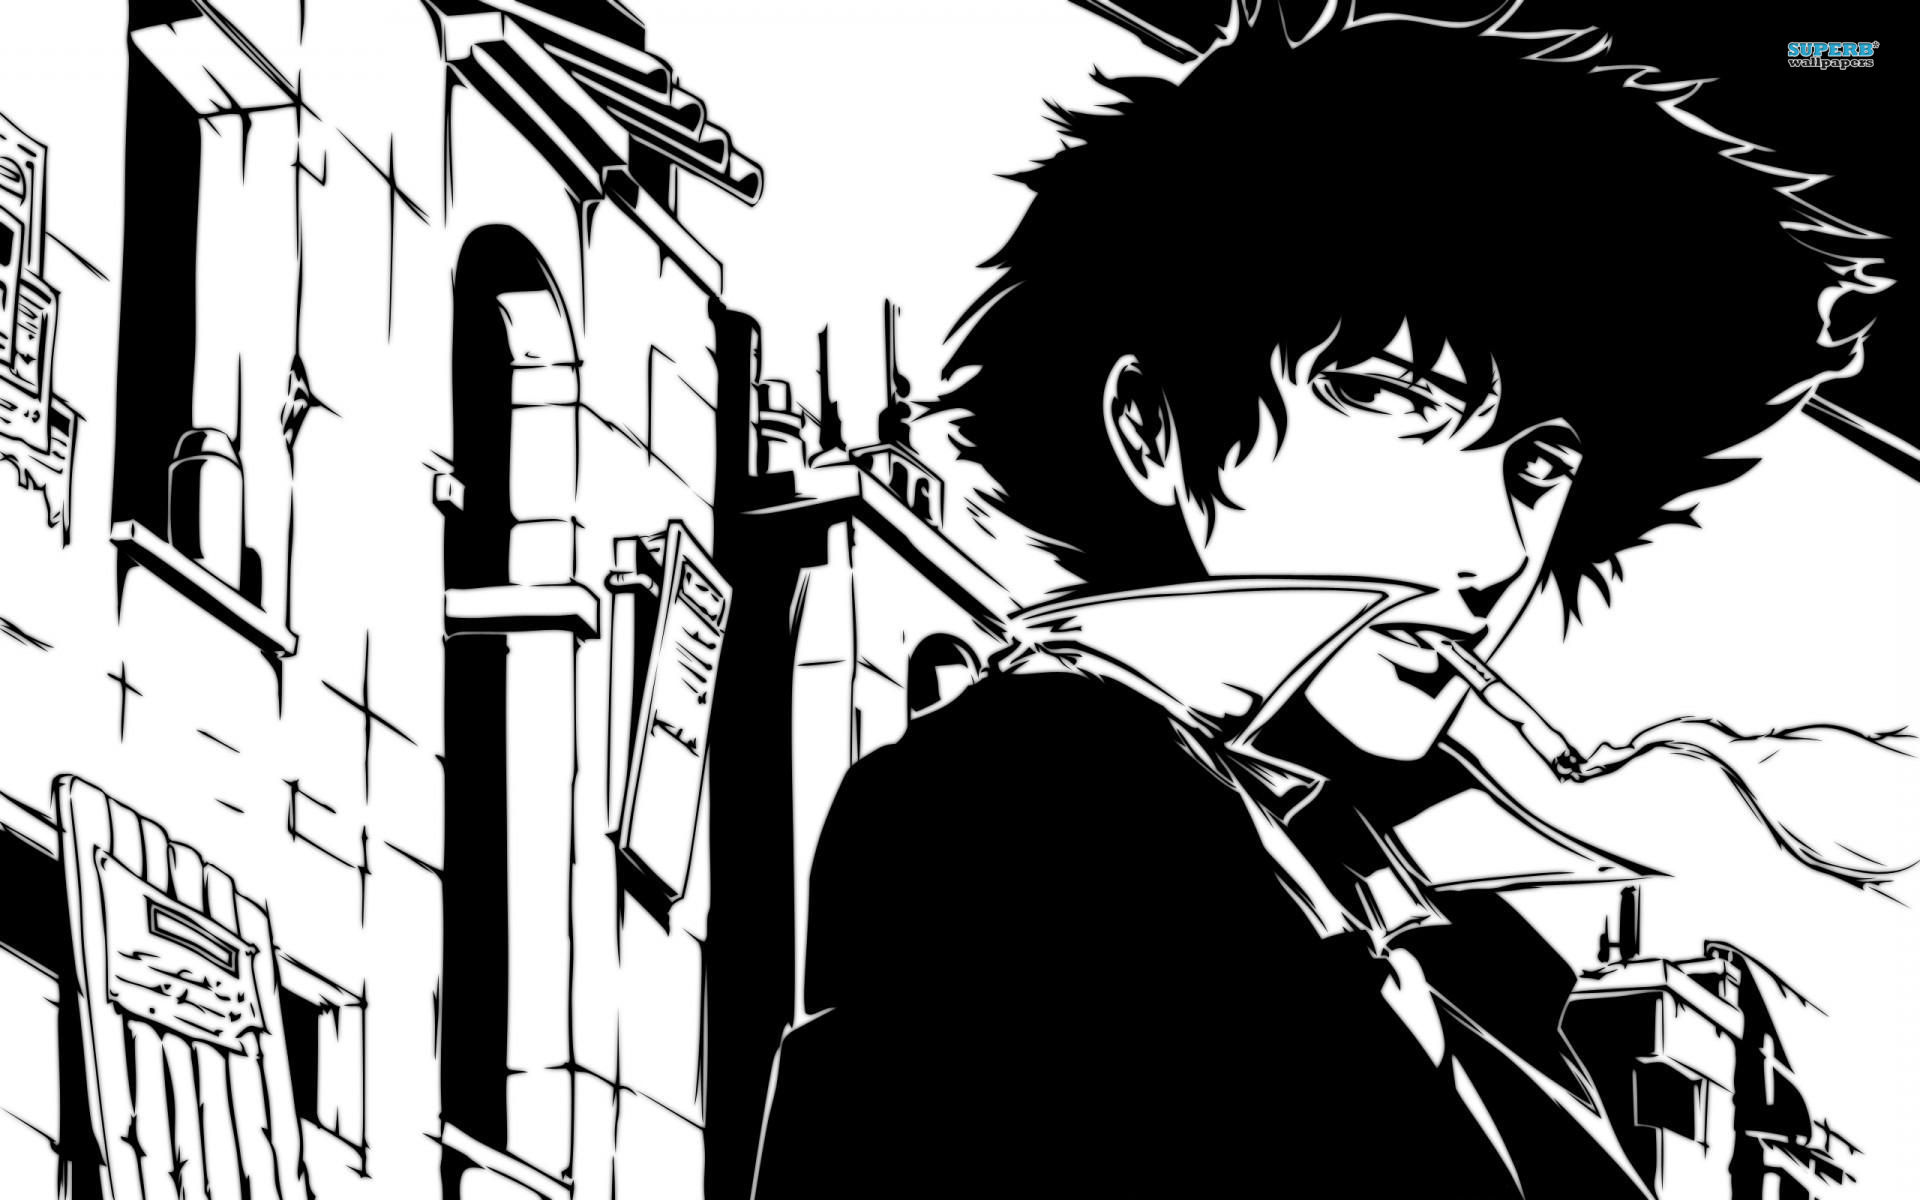 Cowboy Bebop Spike Spiegel Anime 208920 With Resolutions 19201200 1920x1200